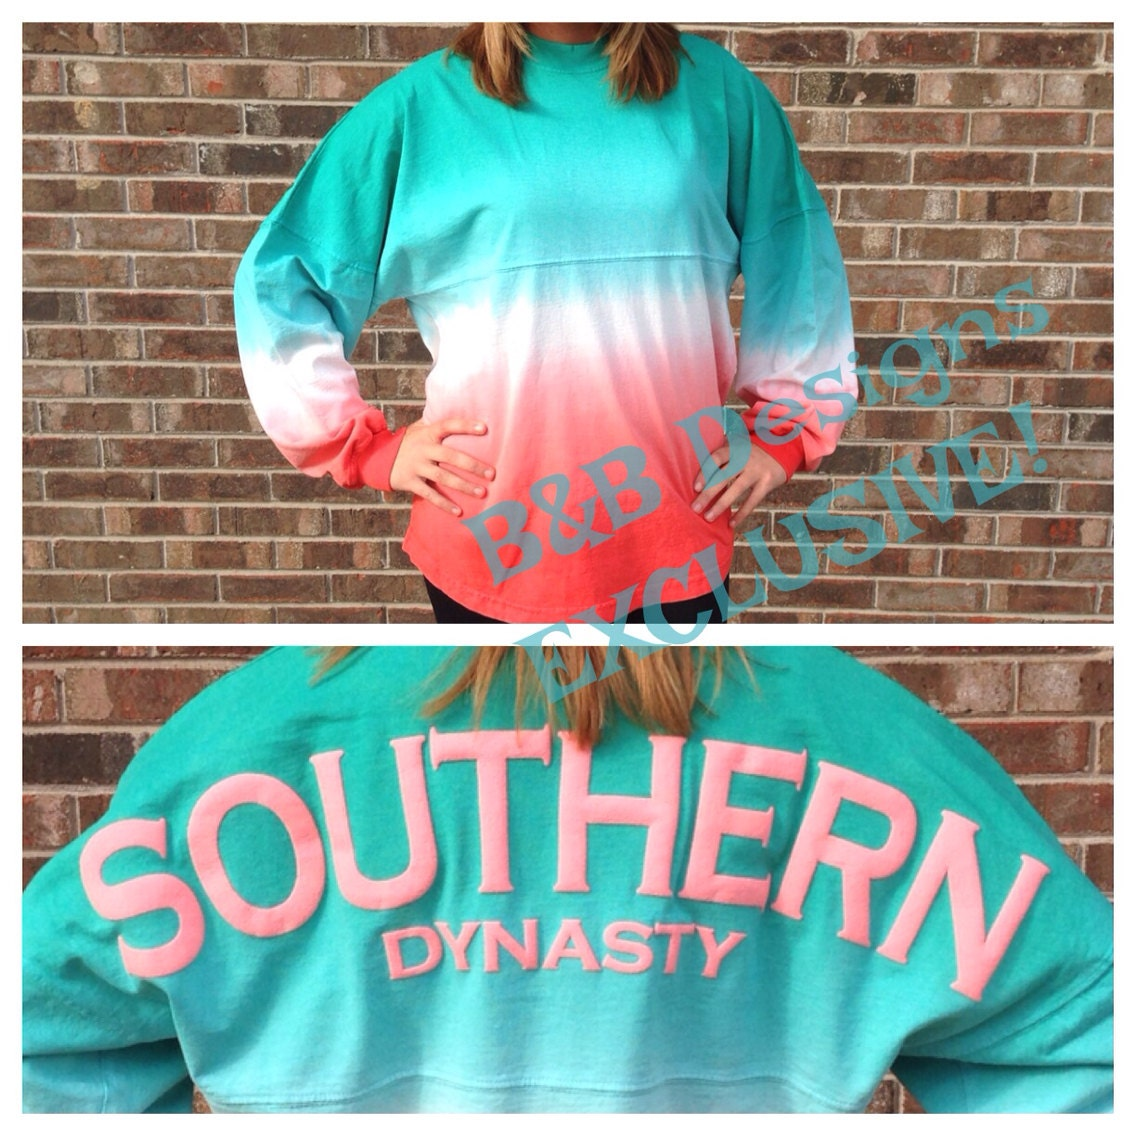 Popular Items For Southern On Etsy